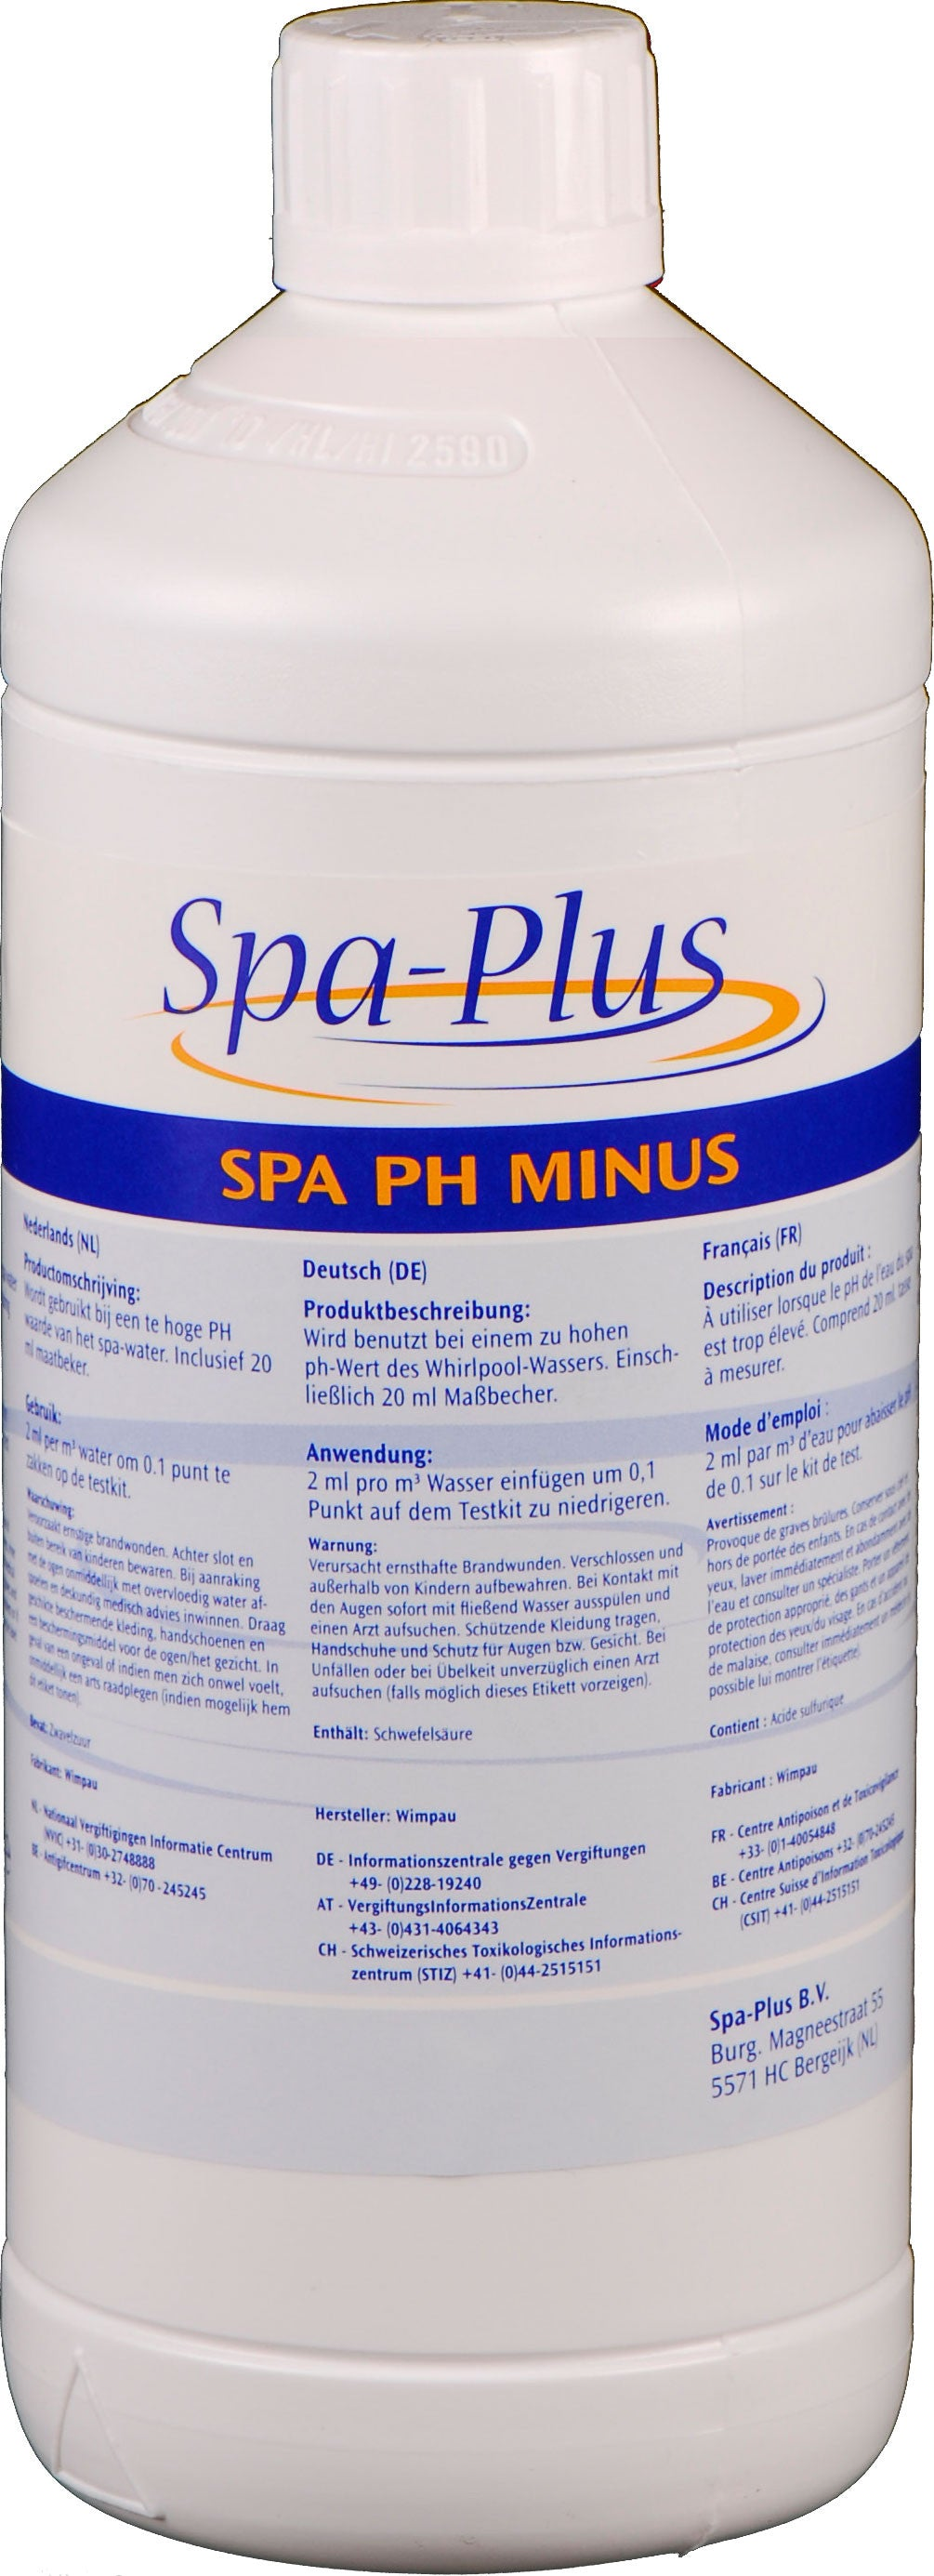 Spa pH Minus - Jacuzzi-producten.nl